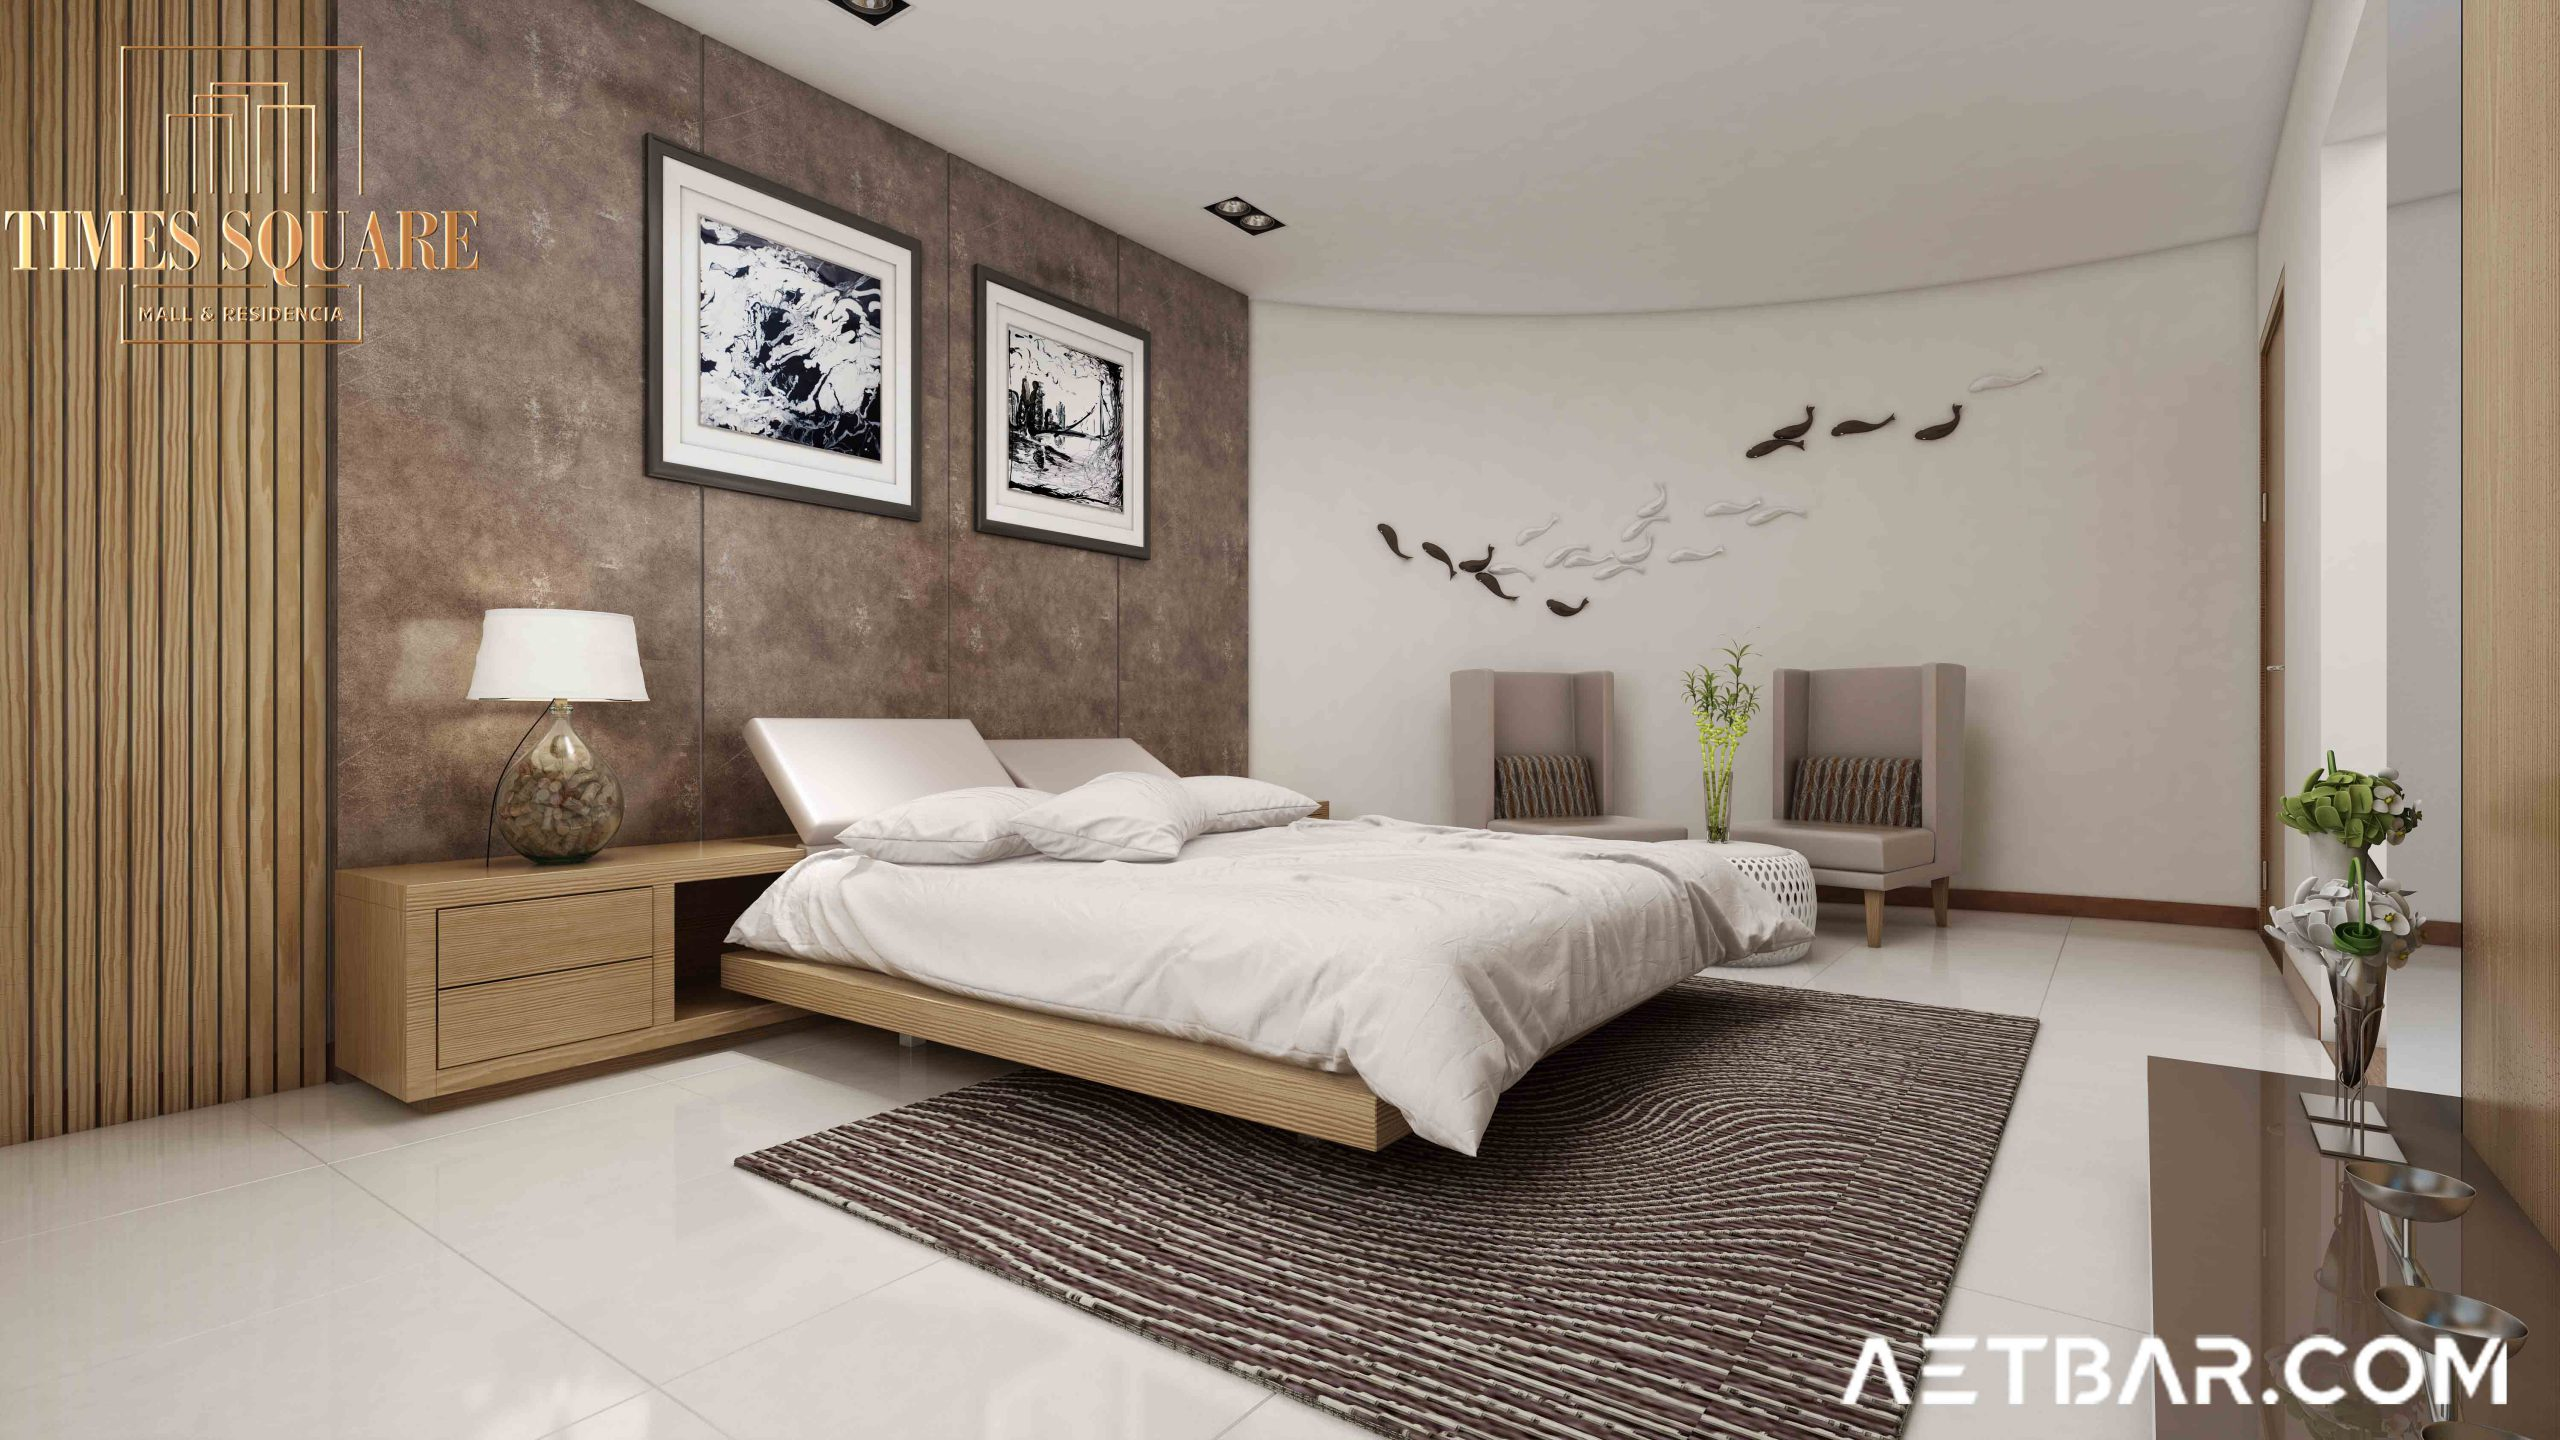 2 Bed Apartment for Installment – Times Square Mall & Residencia